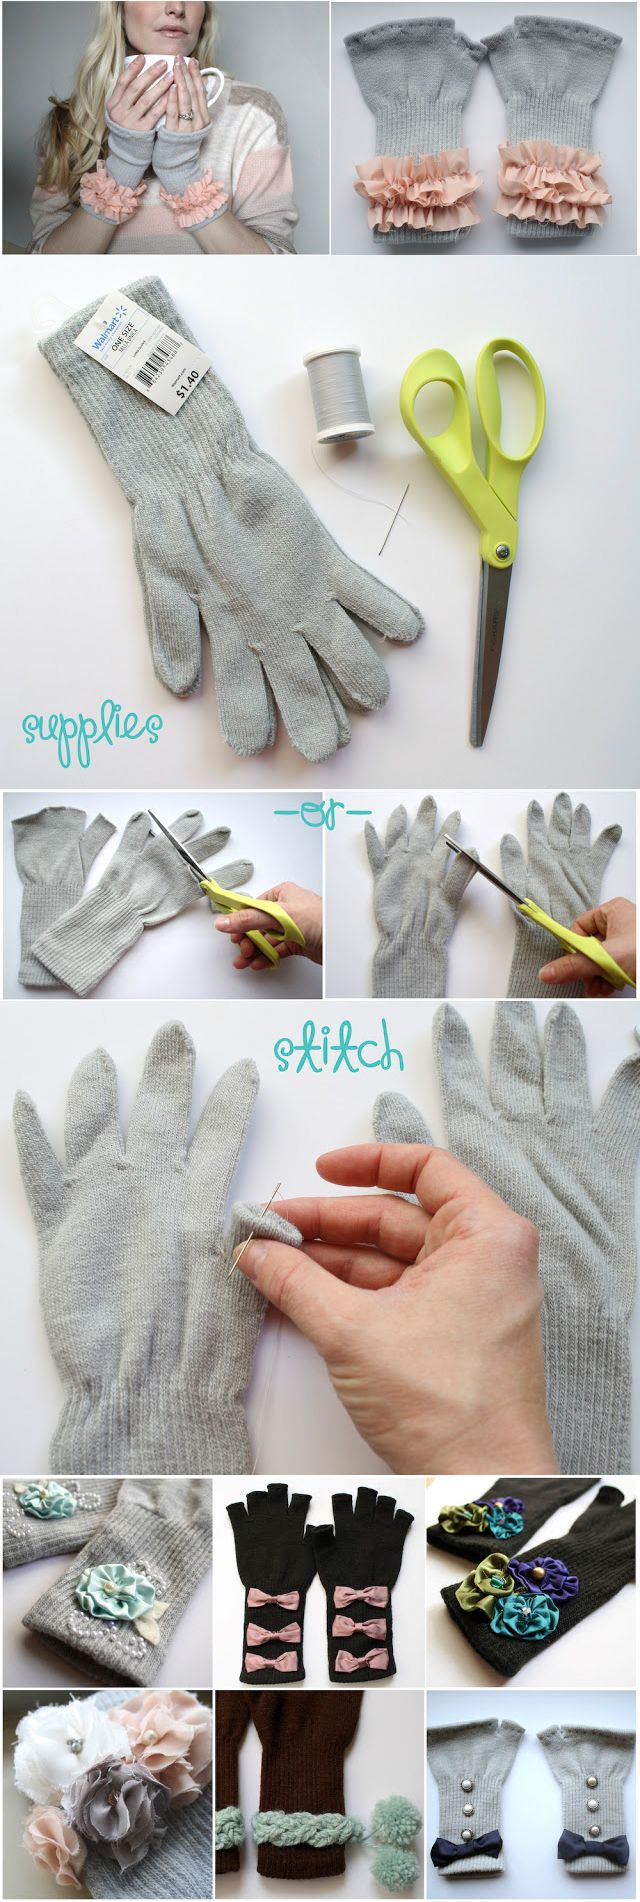 DIY Winter Crafts